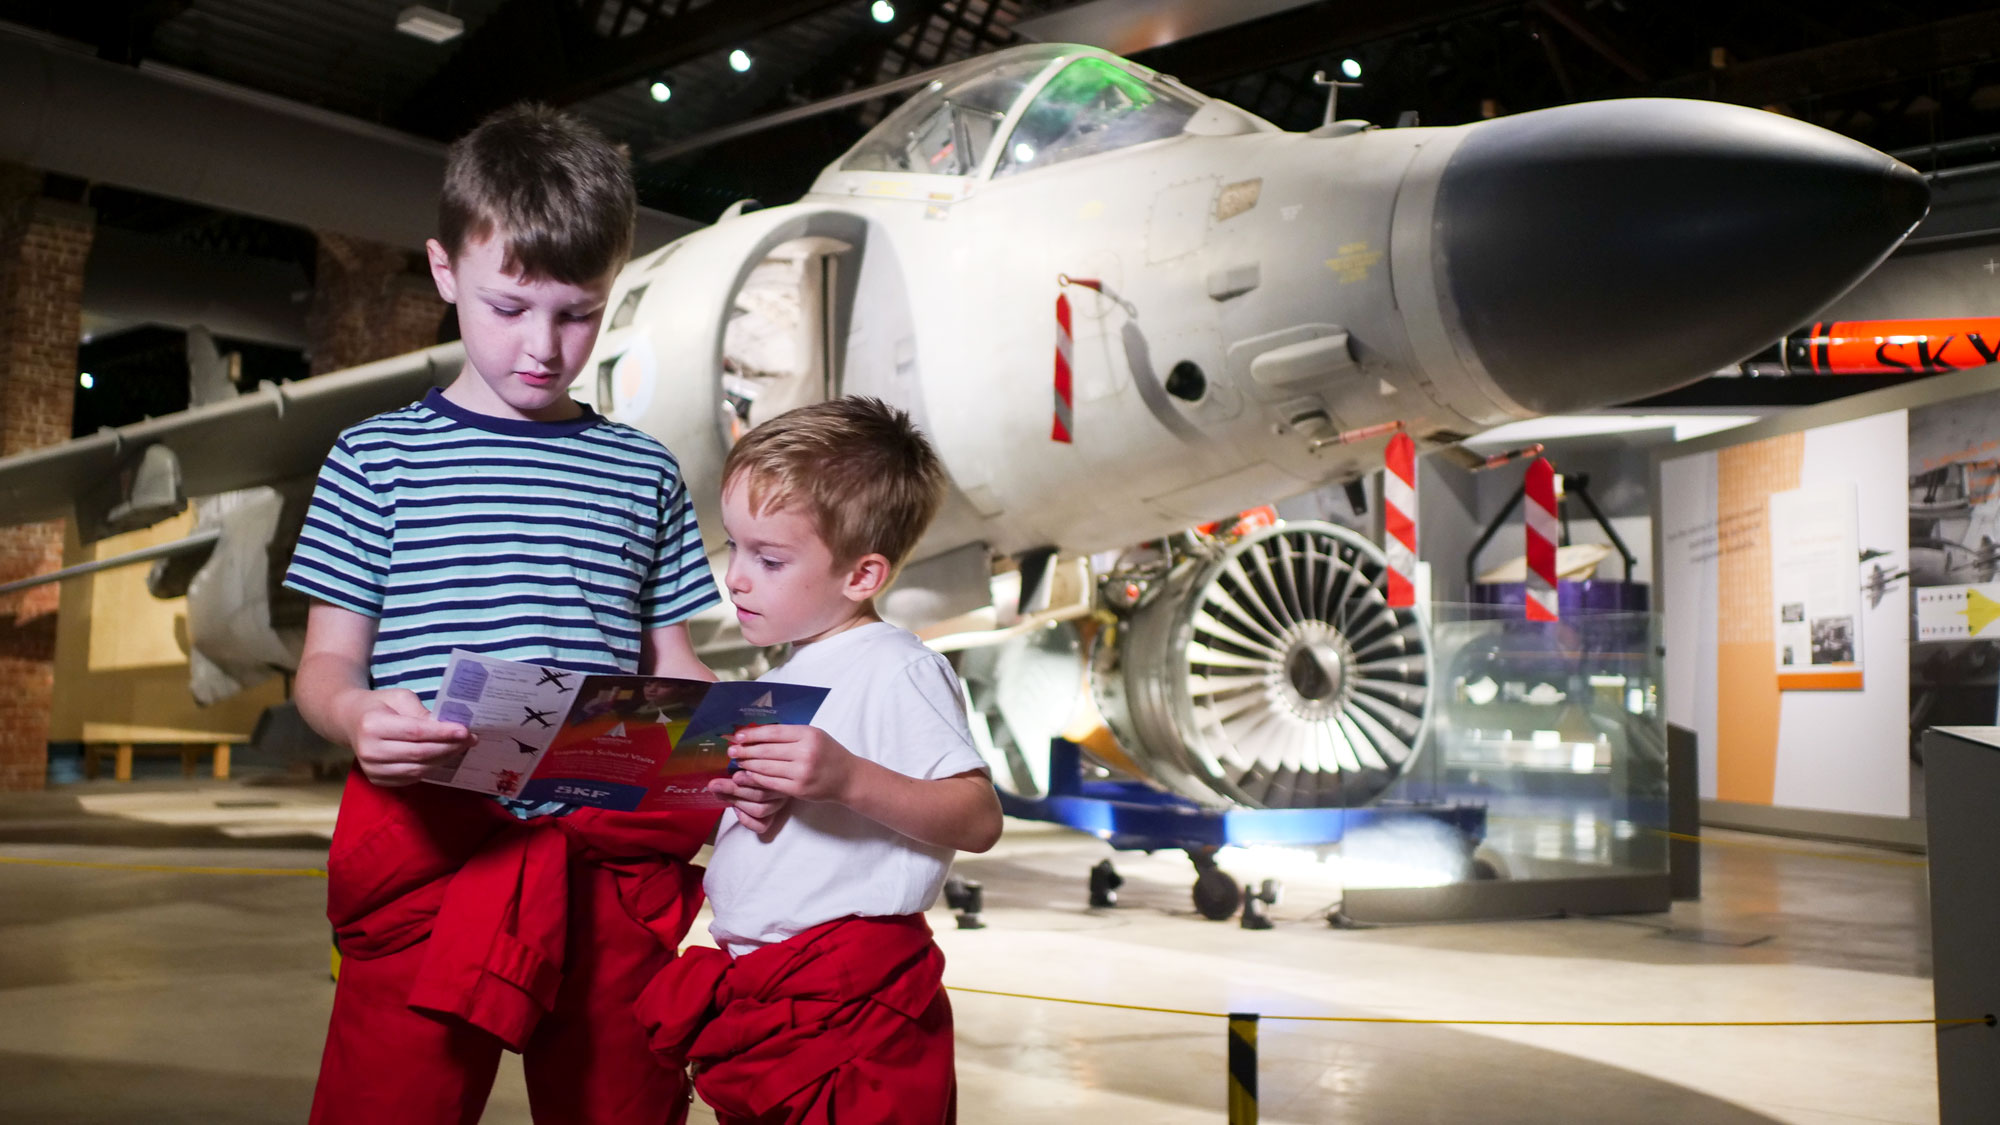 Enjoying Alfie Fox's Fact Finding Trail - Aerospace Bristol offers a fun, hands-on day out for all ages.